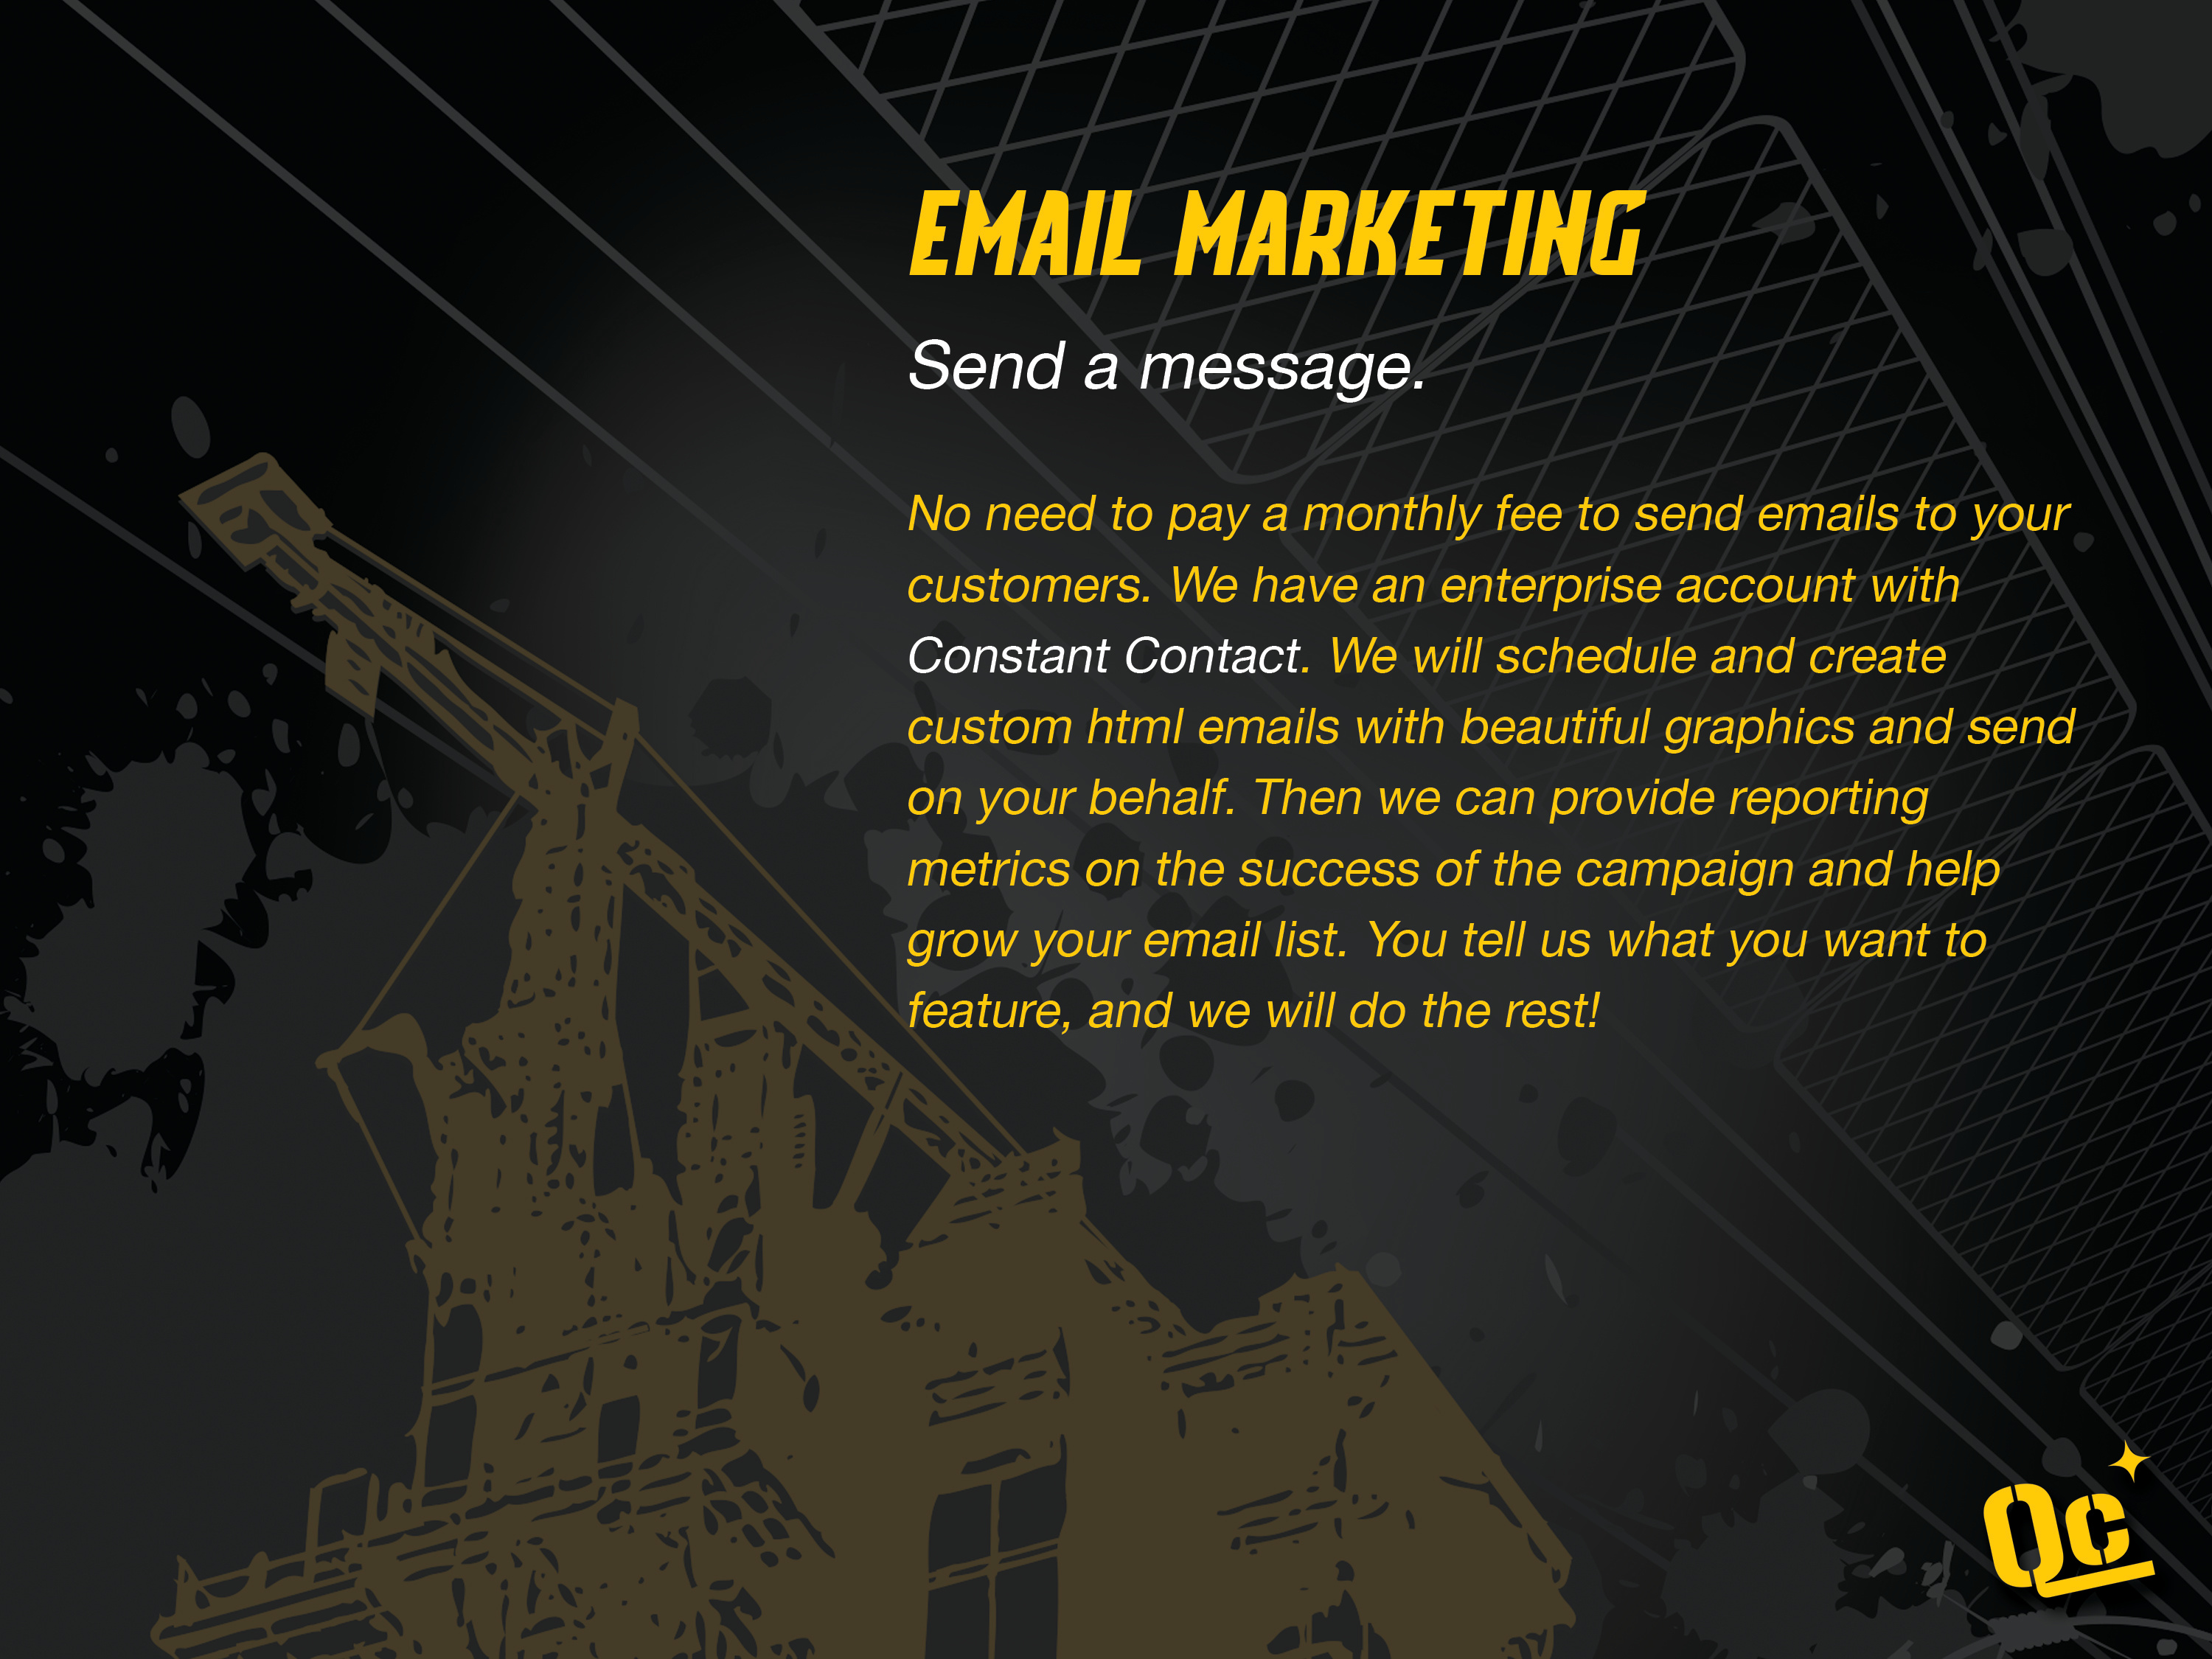 slide 12 - email marketing